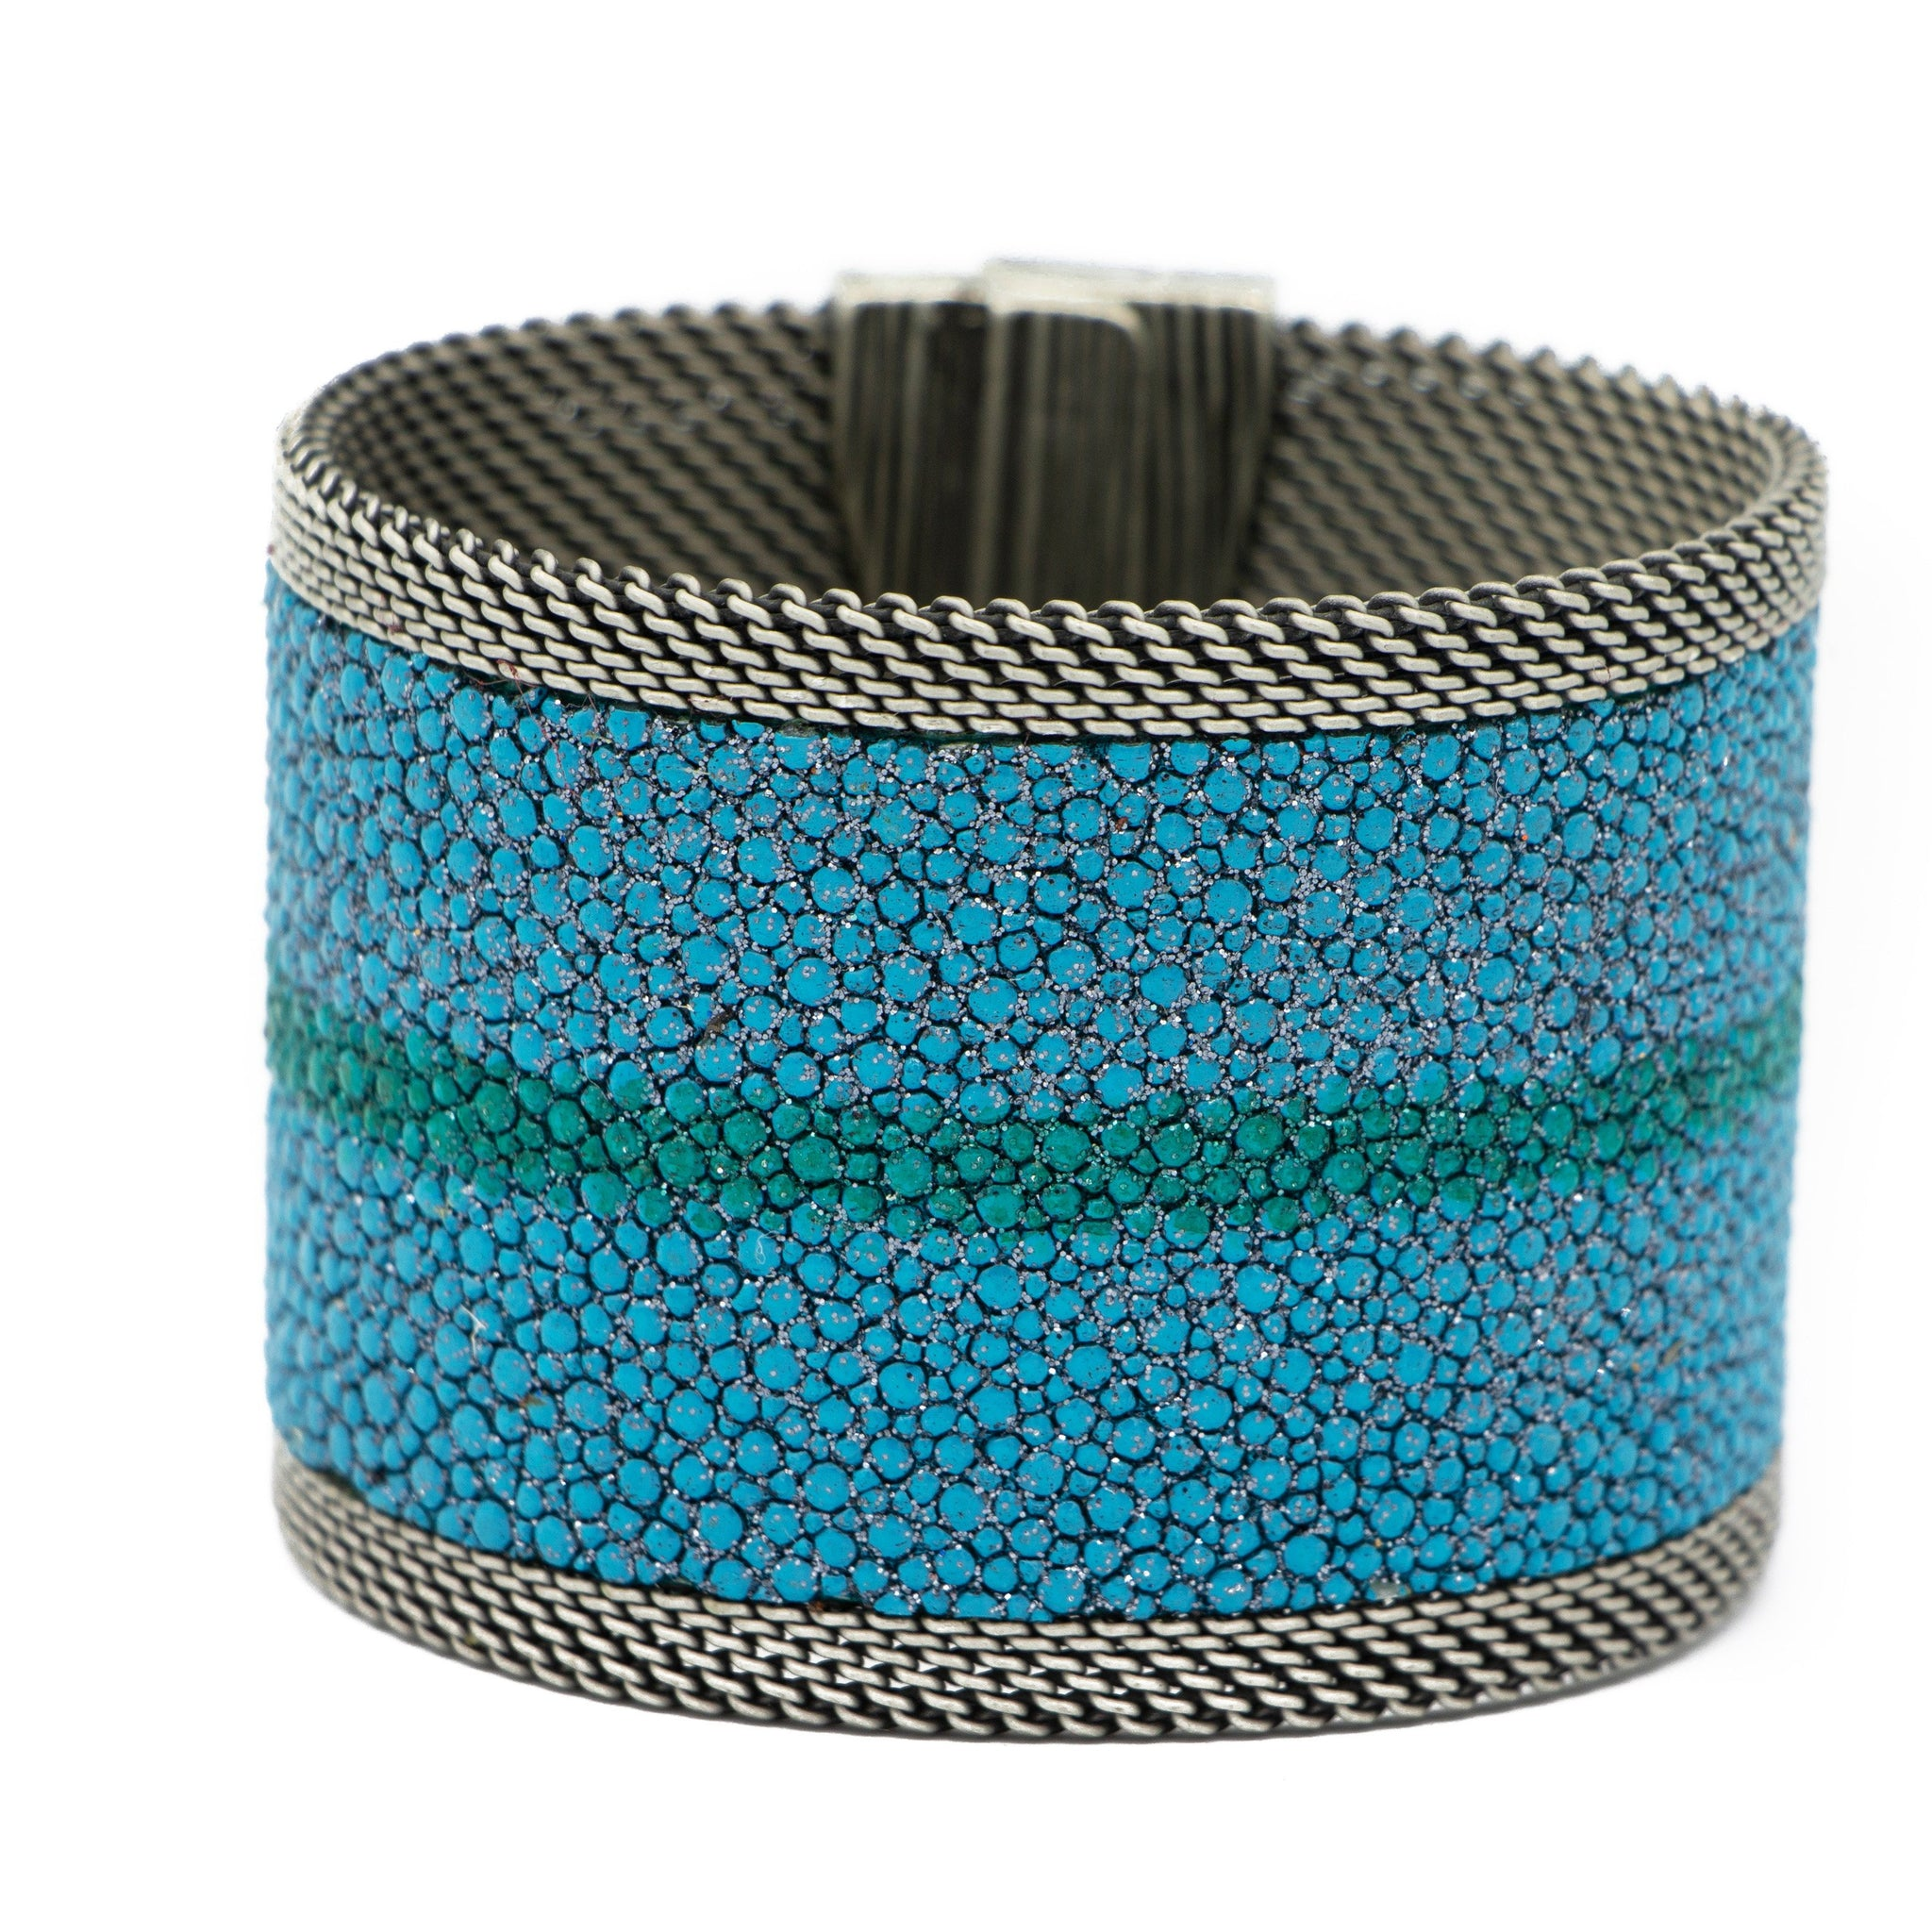 Teal Shimmer Stingray Cuff Jade Stripe